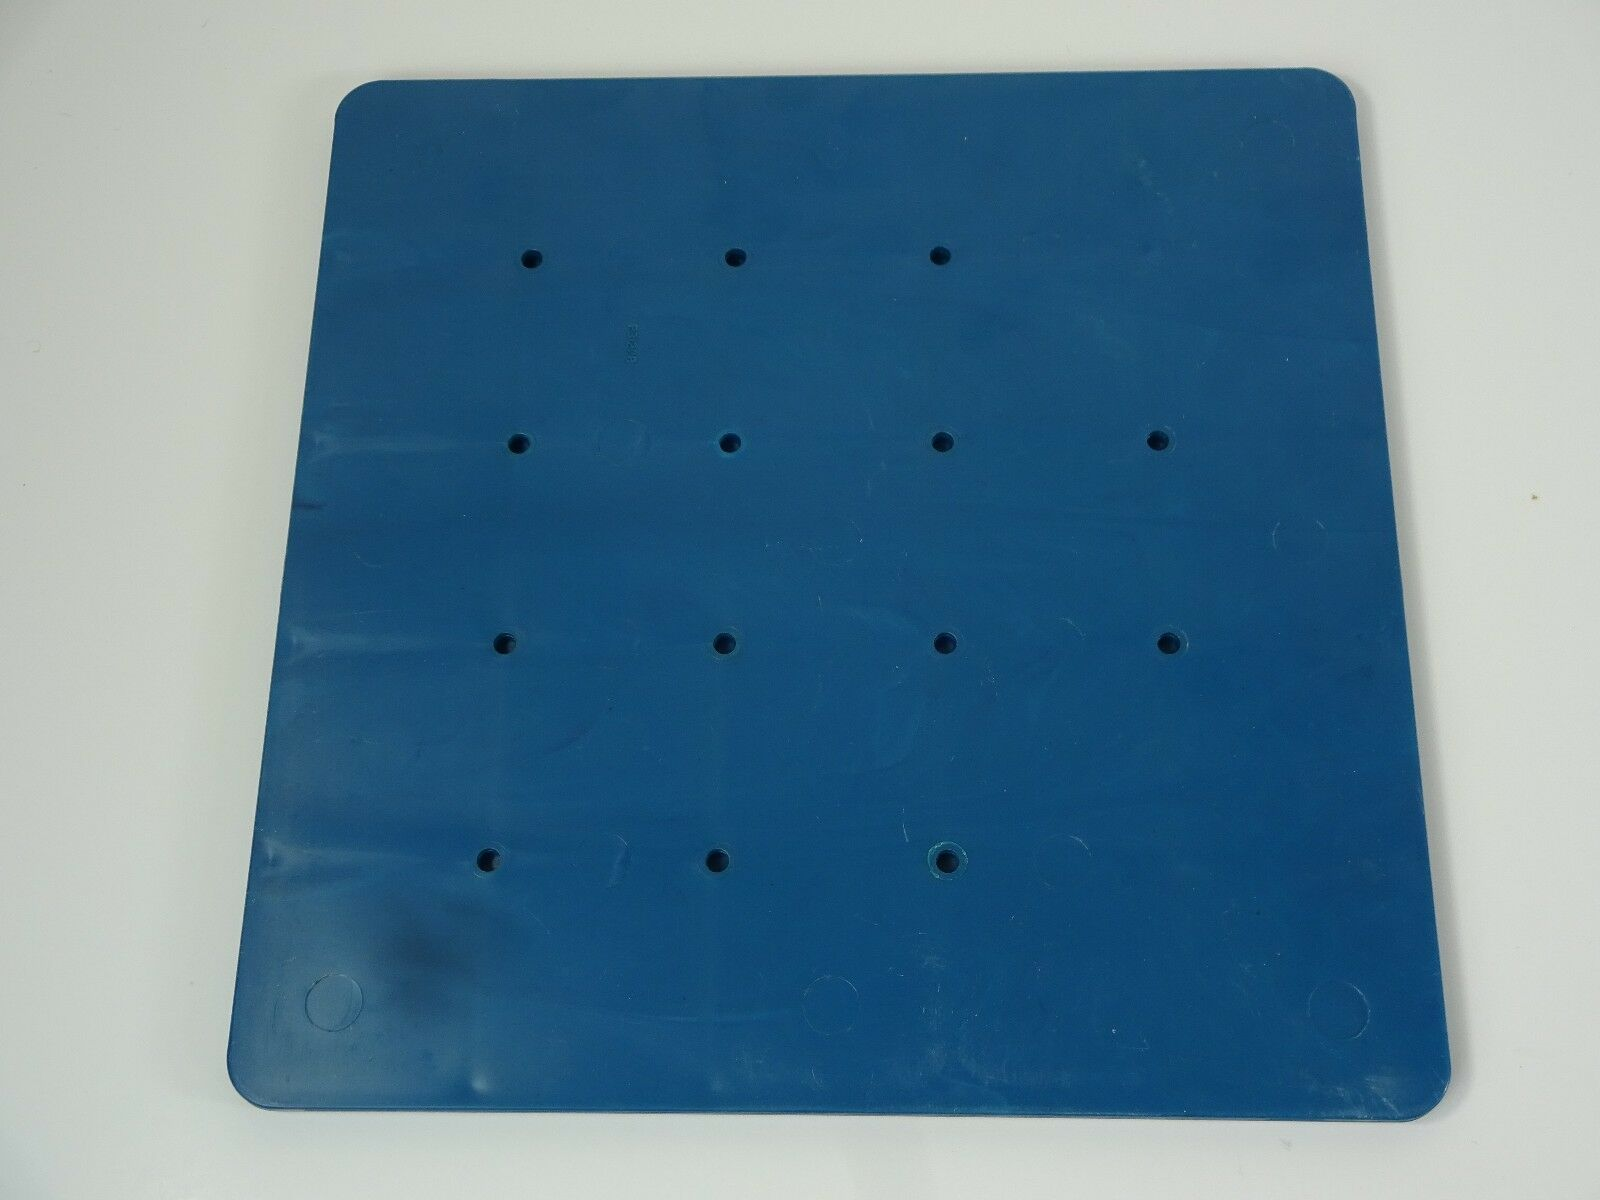 Vintage 1977 TOUCHE Game #78382 Gabriel Parts ONLY - Game Board Center Middle